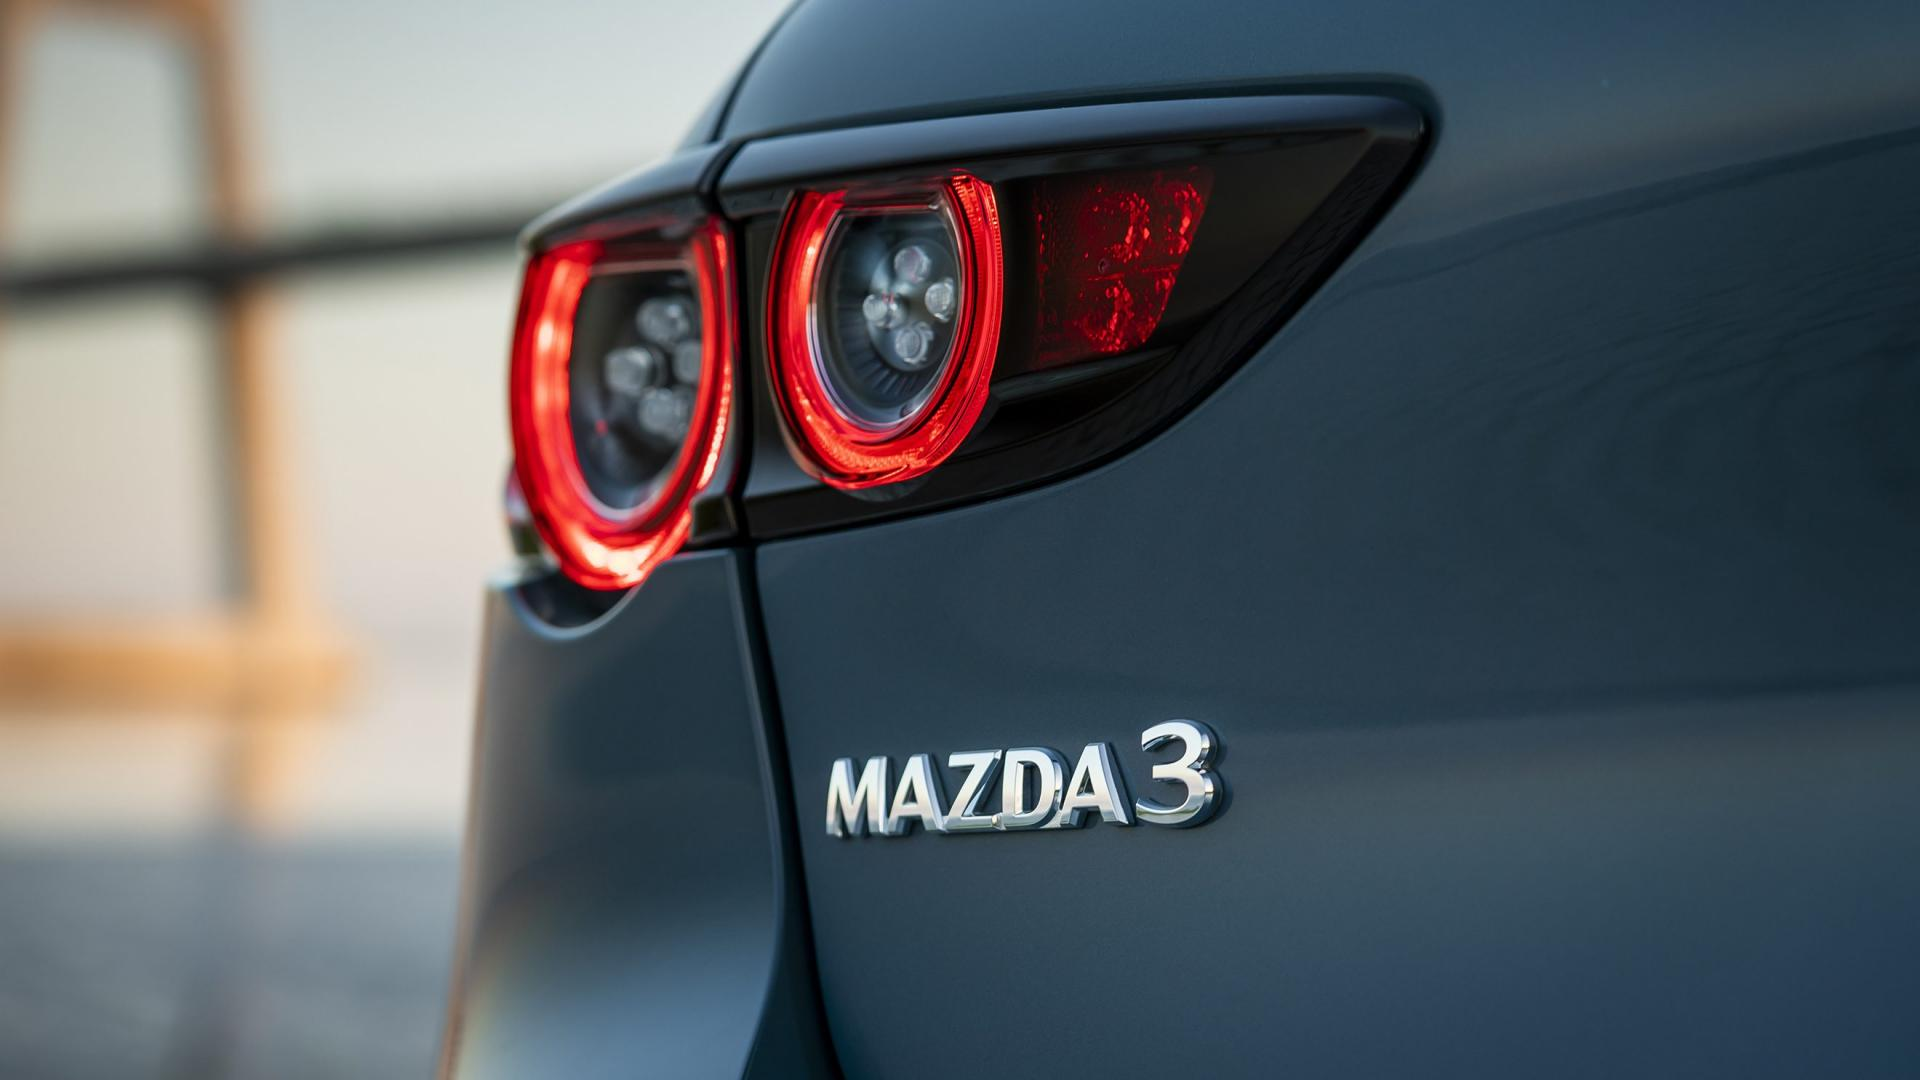 Mazda 3 2.0 SkyActiv-G 122 6MT Hatchback badge